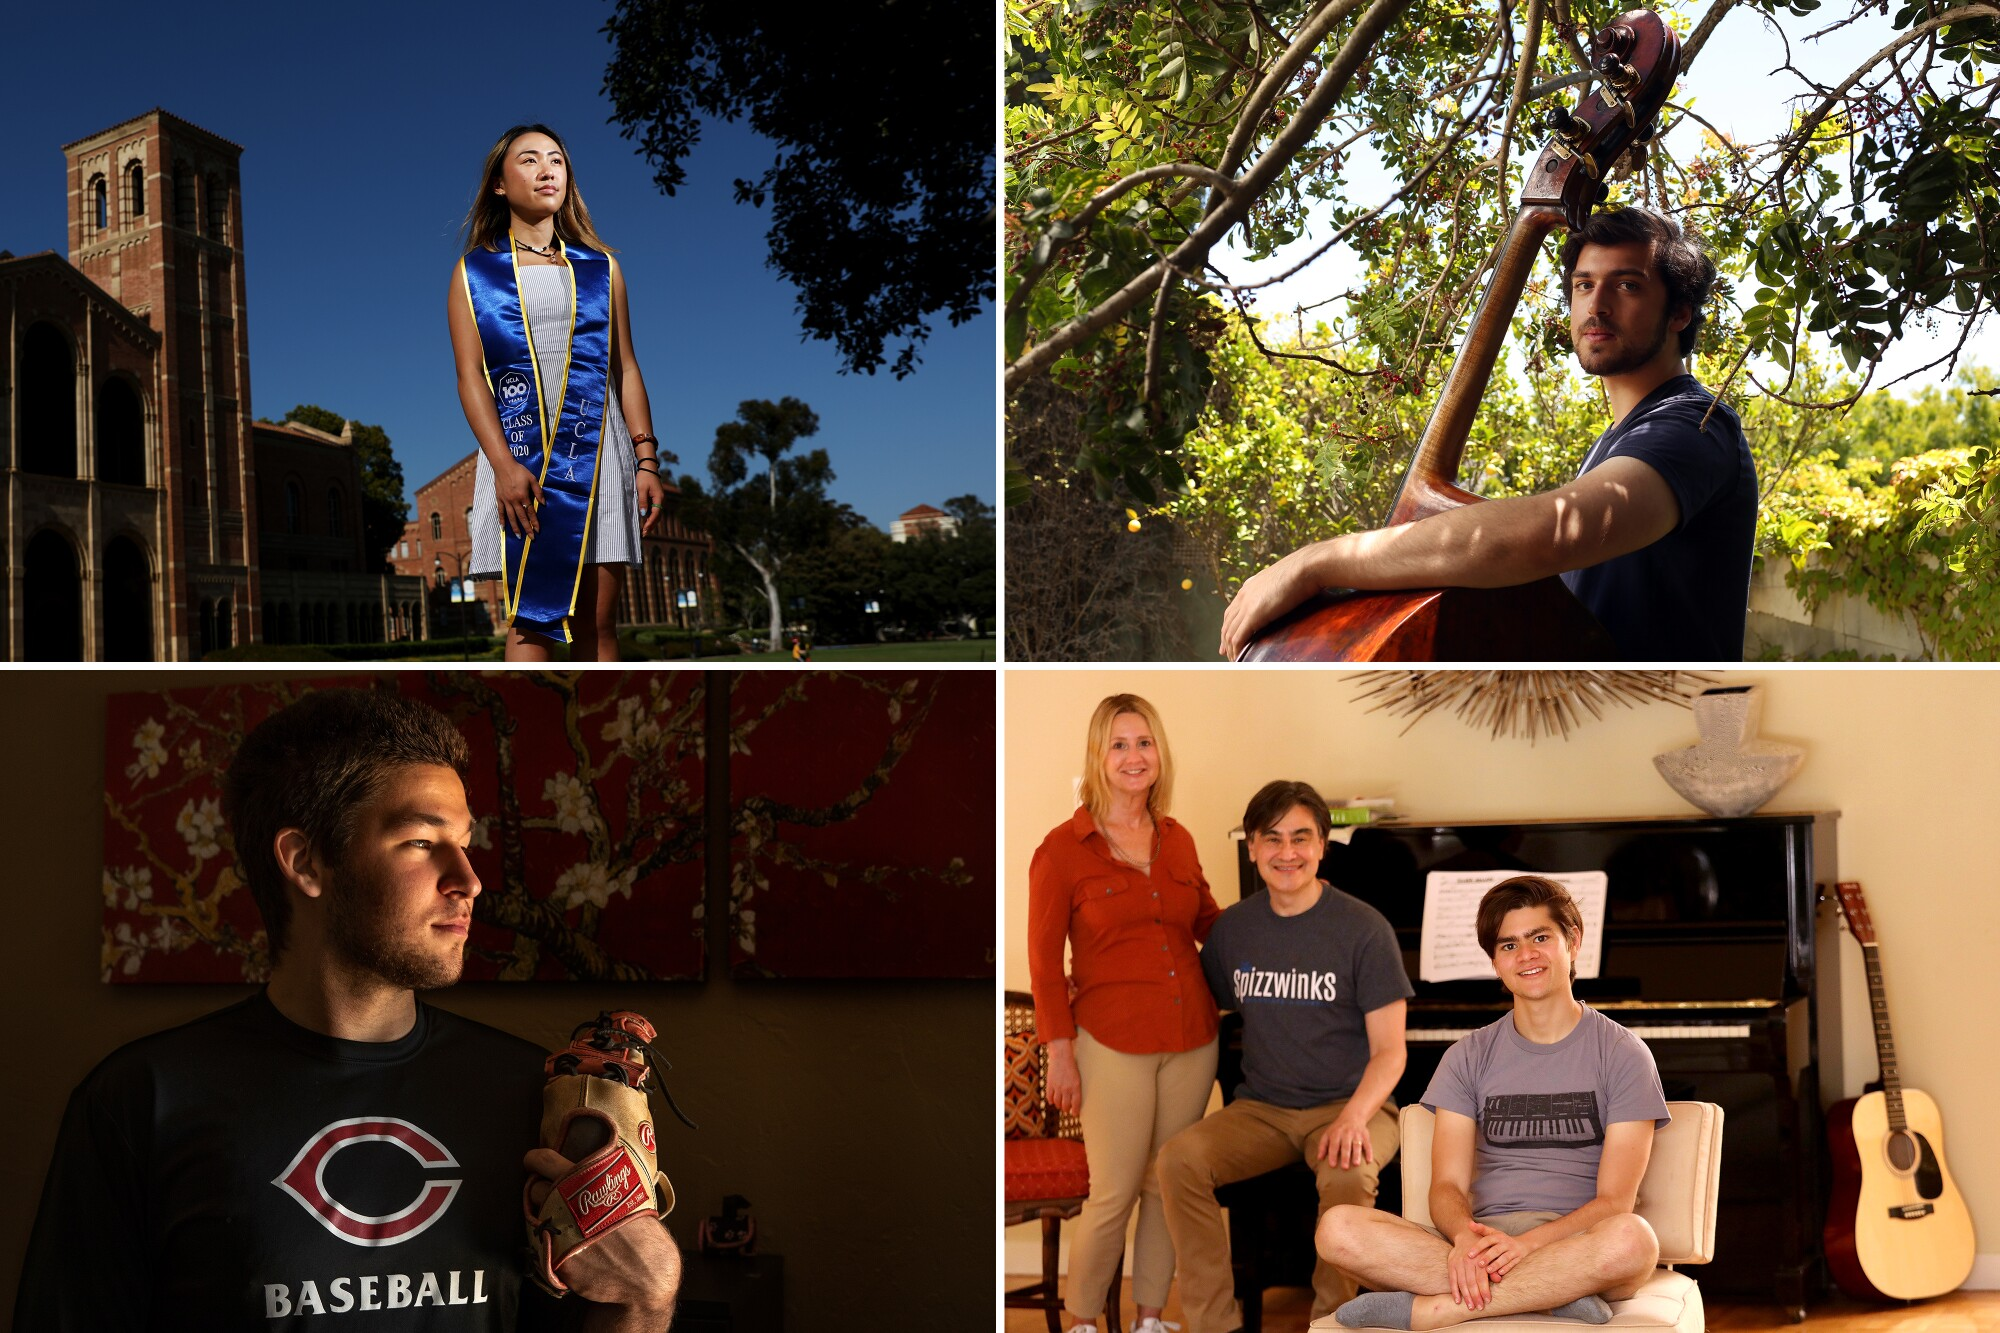 Clockwise from top left: Christine Tran, a UCLA senior majoring in international development and Asian studies; Weston Kerekes, a senior at Santa Monica High School; Dylan Schifrin, a senior at Yale majoring in music, with his parents, Lissa Kapstrom and Will Schifrin; and Alec Garcia, a senior at Cleveland Charter High School in Reseda.